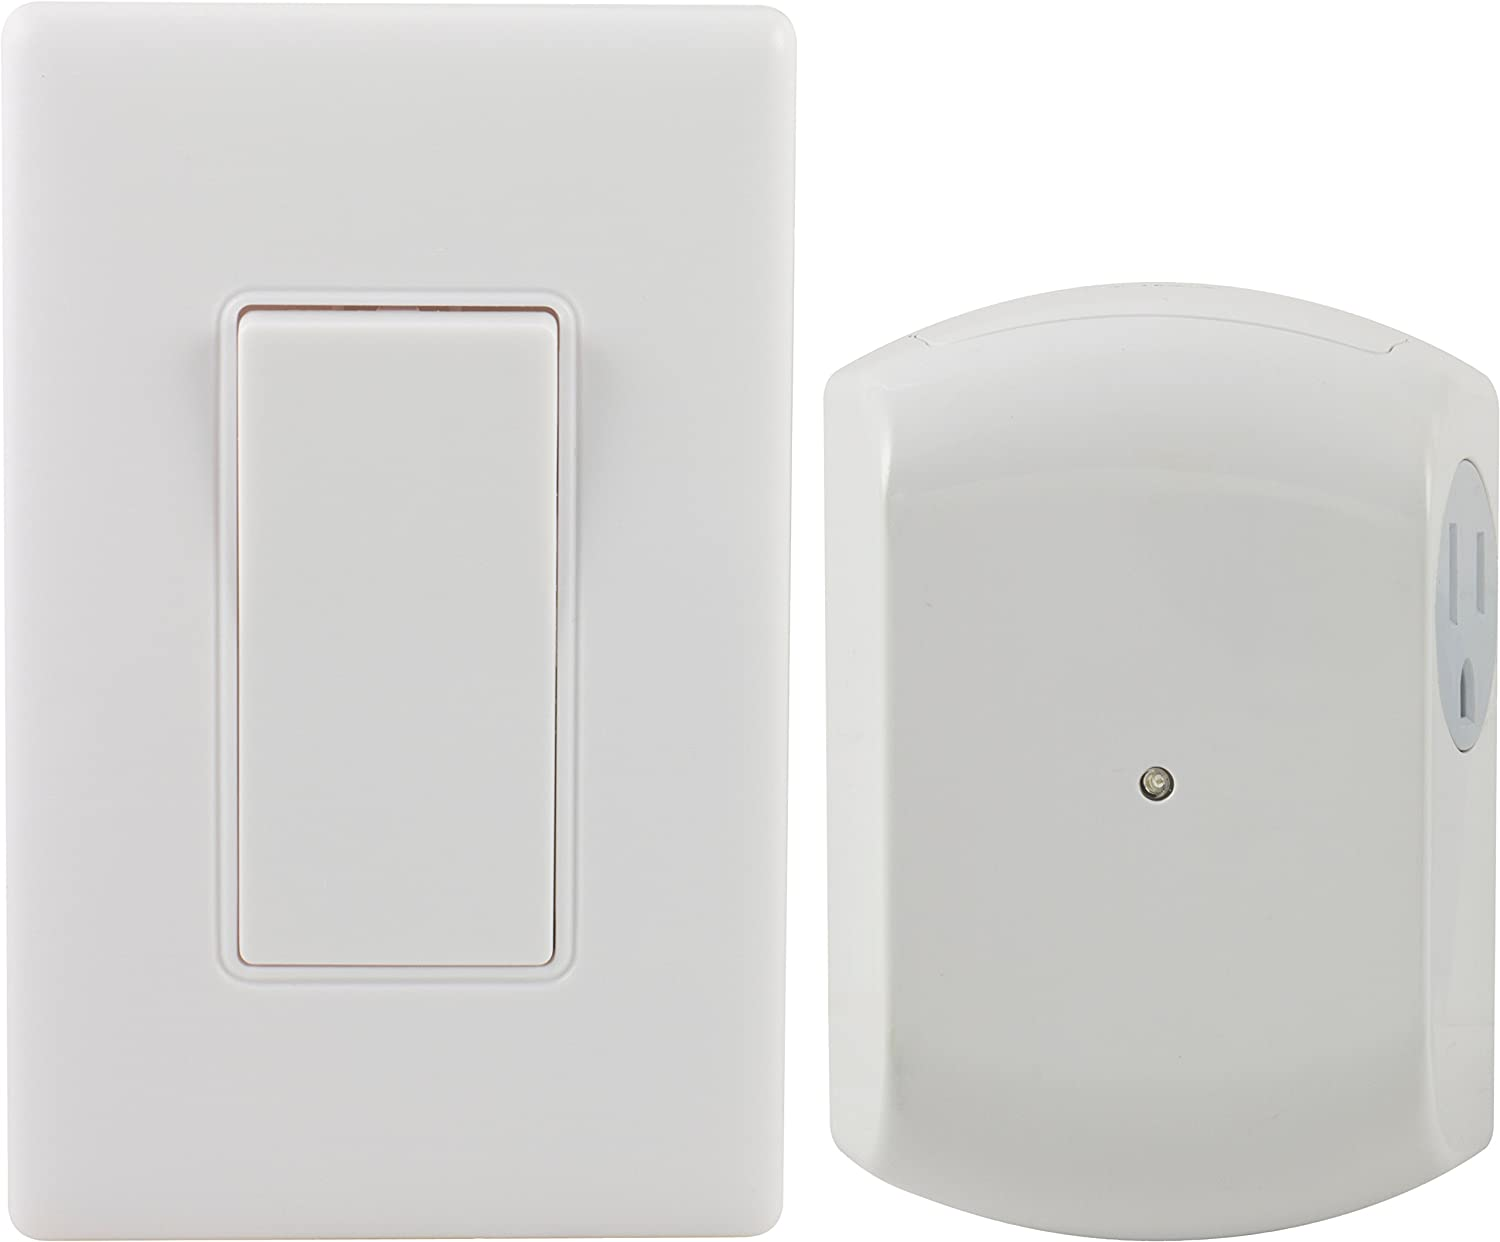 Ge 18279 Wireless Wall Switch Lighting Control Remote